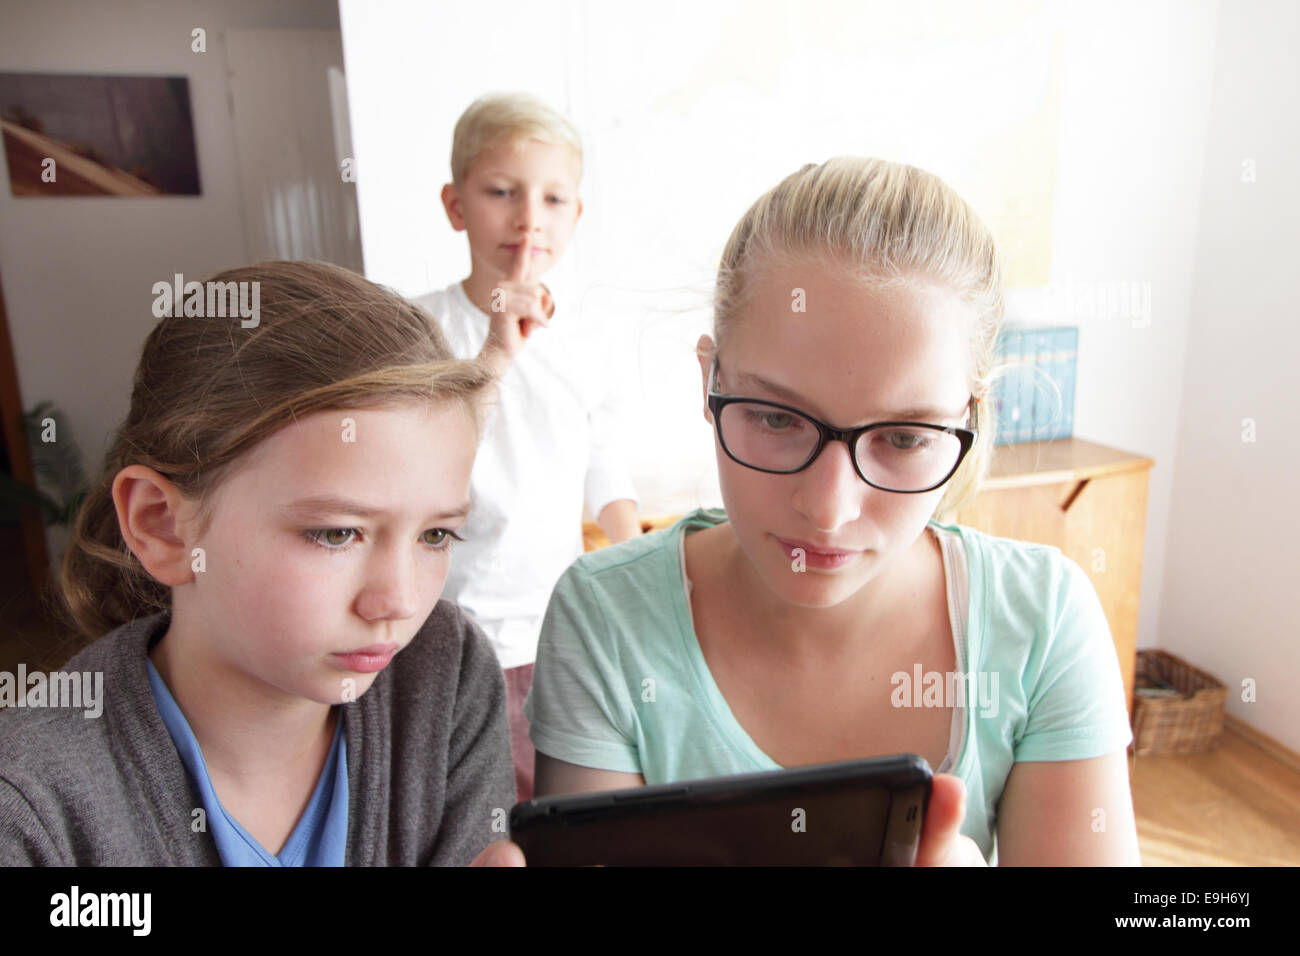 Girls with a smartphone, boy watching them, Baden-Wuerttemberg, Germany - Stock Image